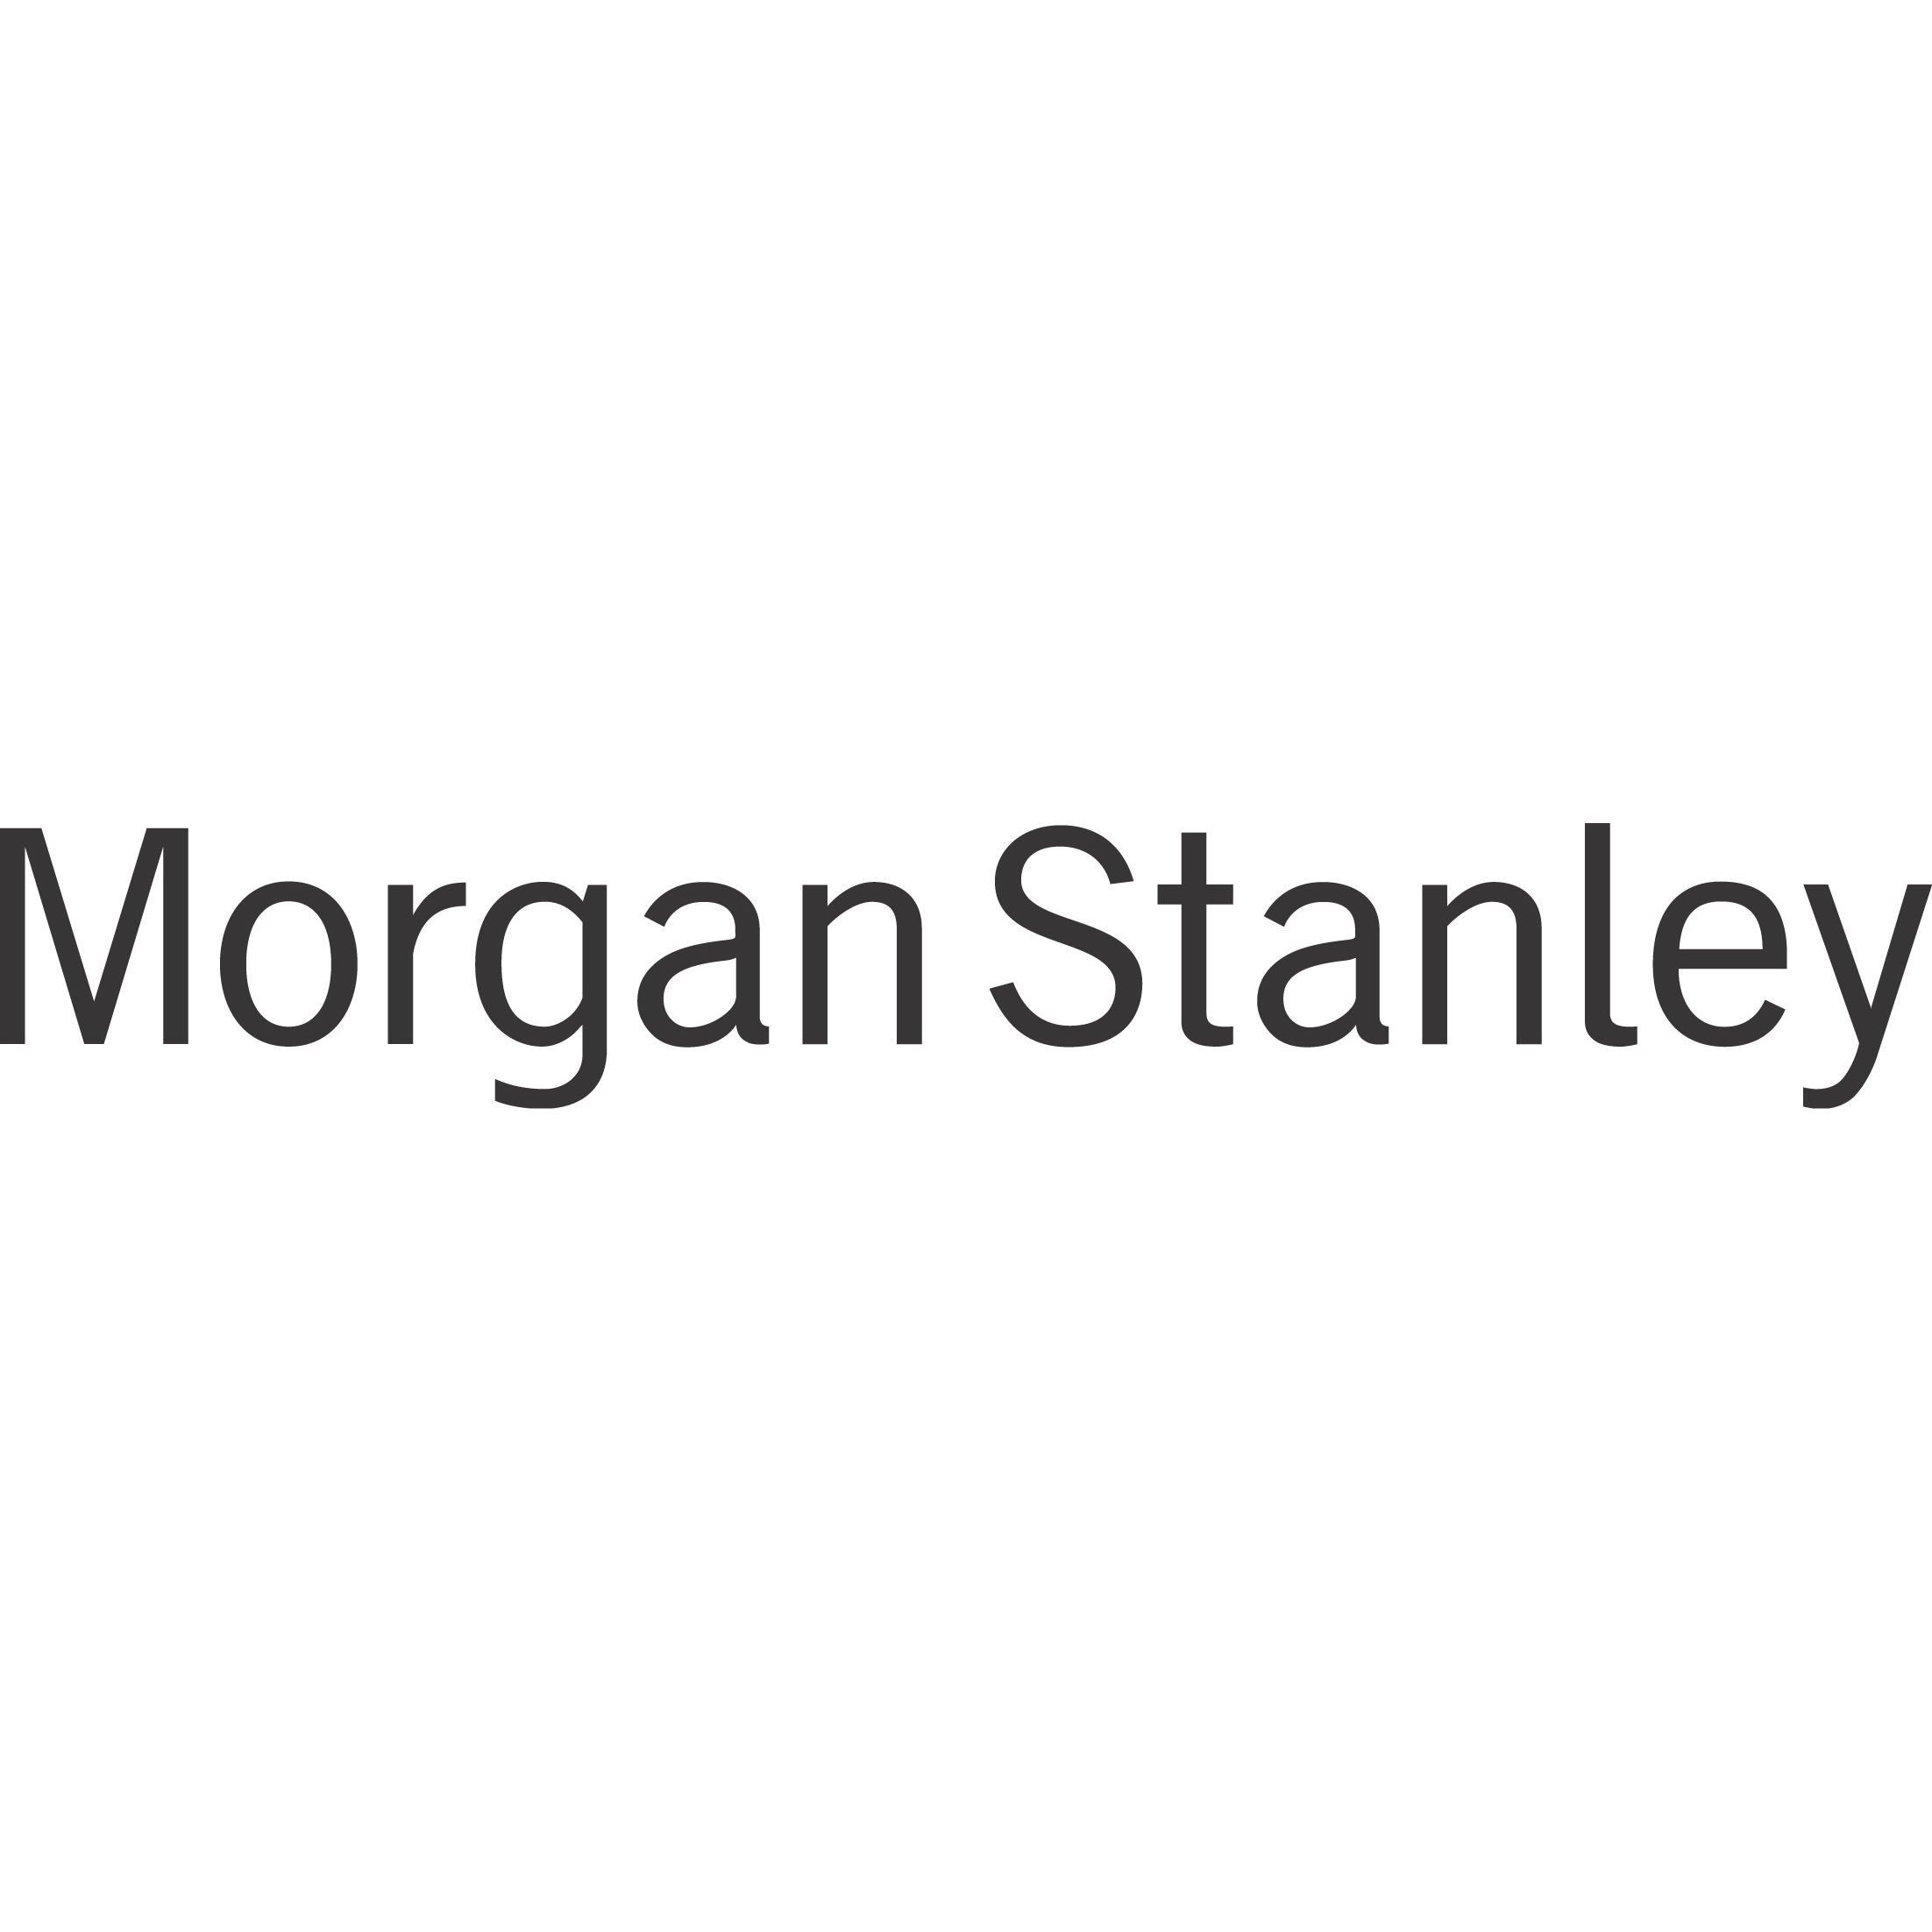 Jack Sytsma - Morgan Stanley | Financial Advisor in Grand Rapids,Michigan